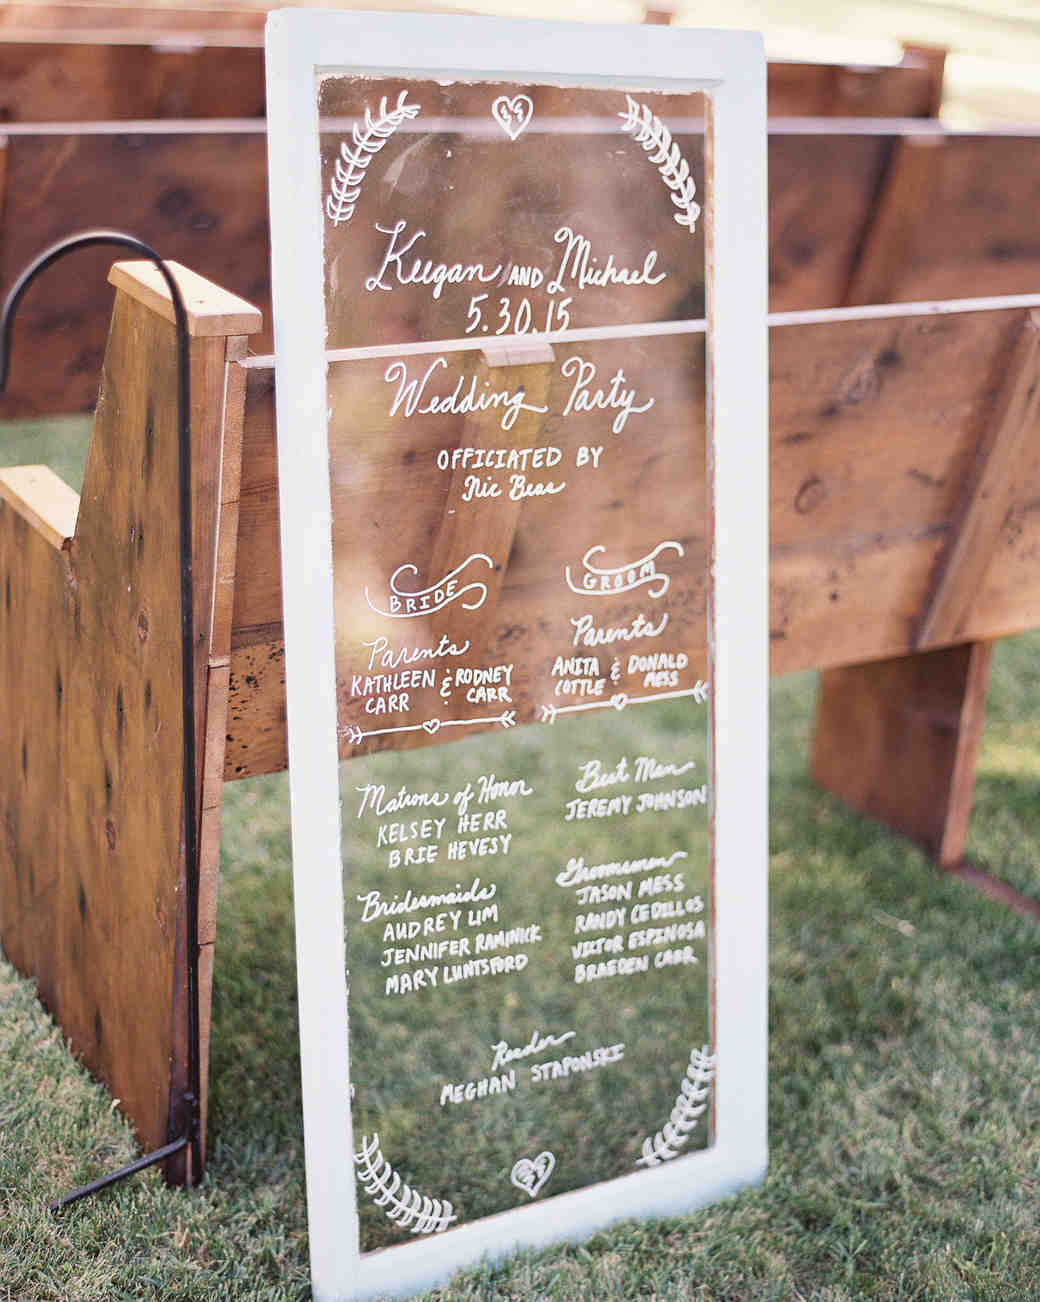 Ceremony Program Window Pane